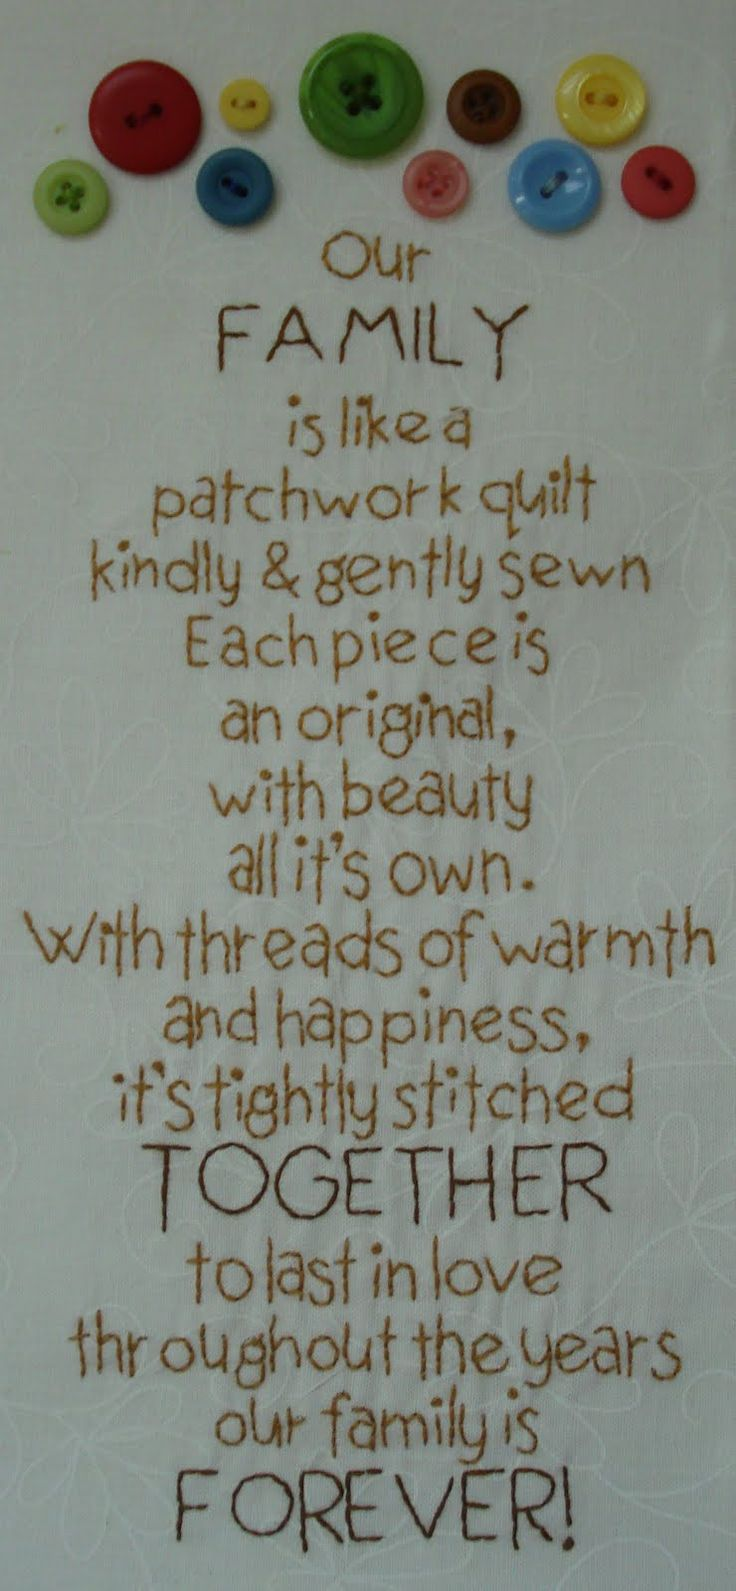 Our Family is like a patchwork quilt - From Lori Holt's Family Renunion quilt.